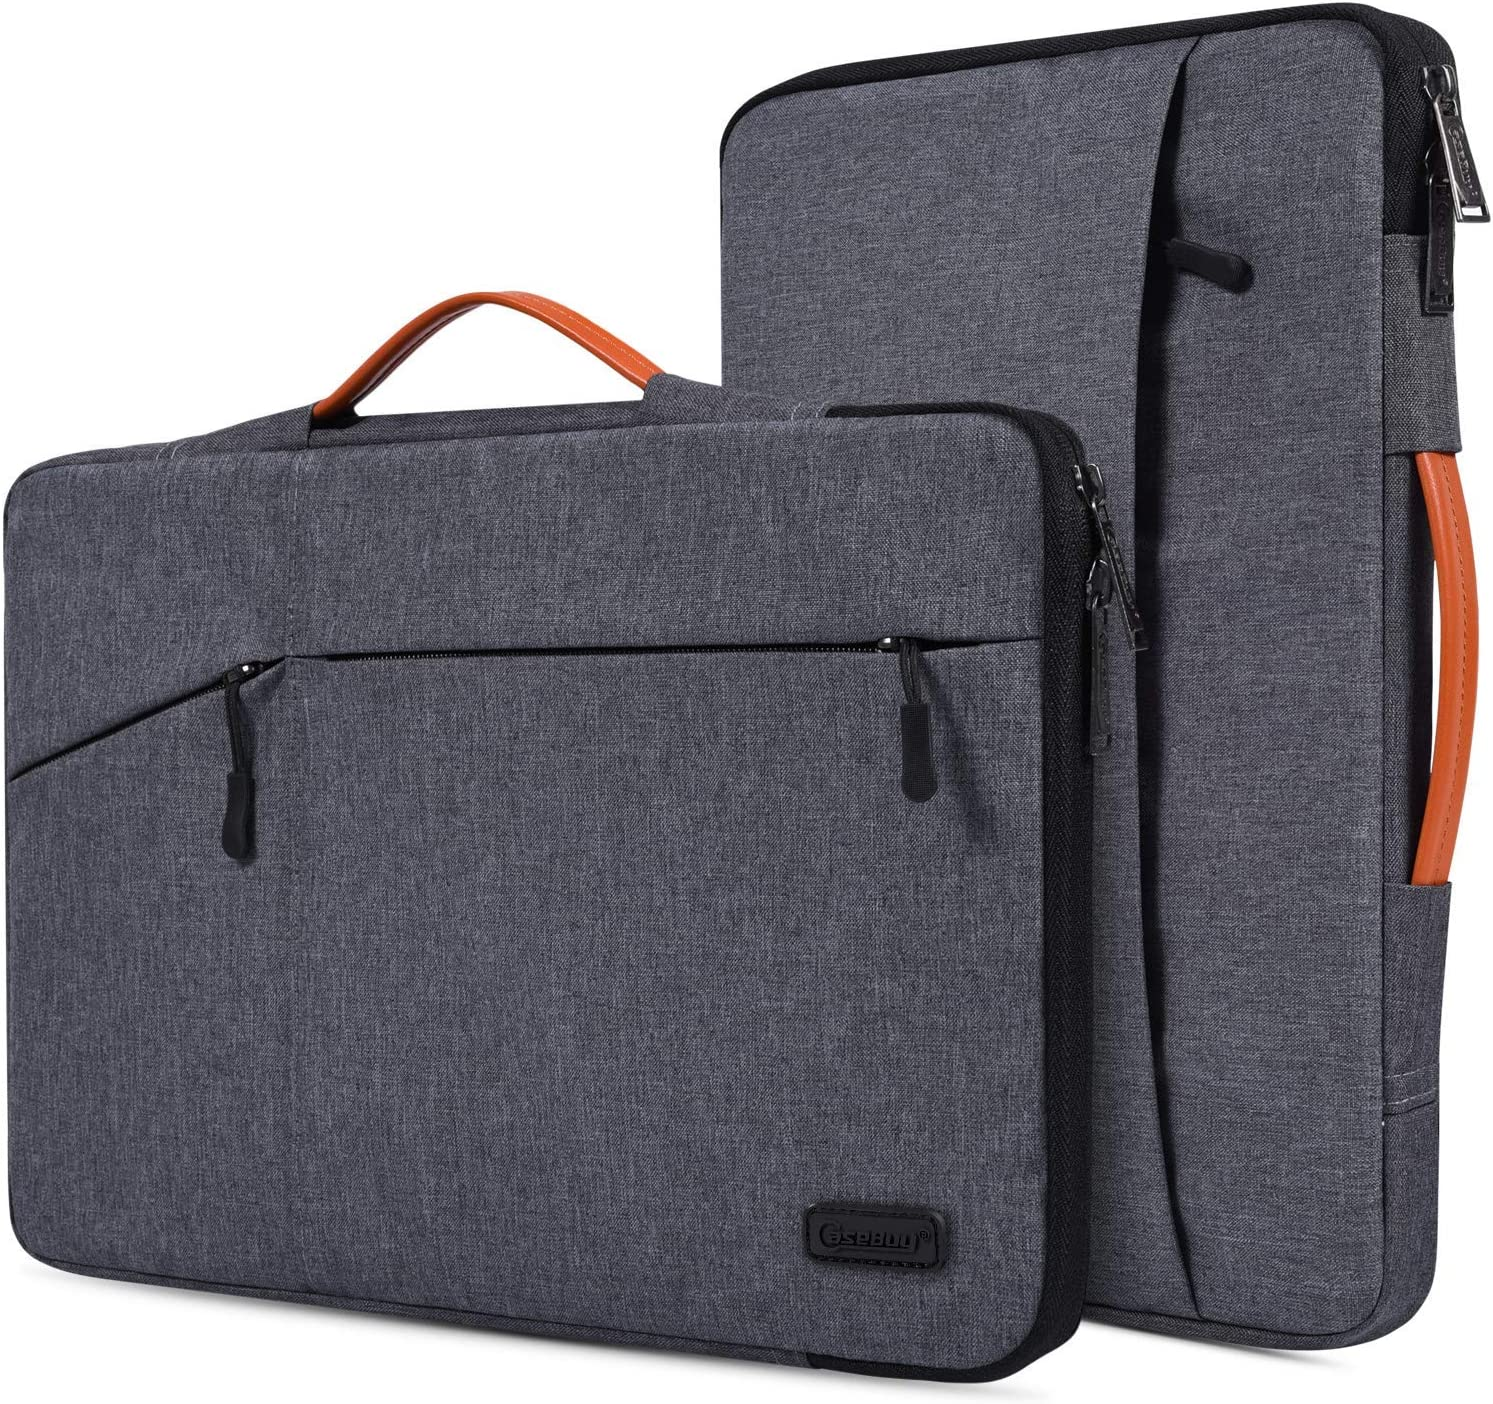 "17.3 inch Laptop Waterpoof Laptop Case for HP 17.3"" Laptop, HP Pavilion 17, HP Envy 17T, HP PROBOOK 17, Dell Inspiron 17 3785 3793, Lenovo Ideapad 17.3, 17.3"" Protective Notebook Bag, Space Grey"